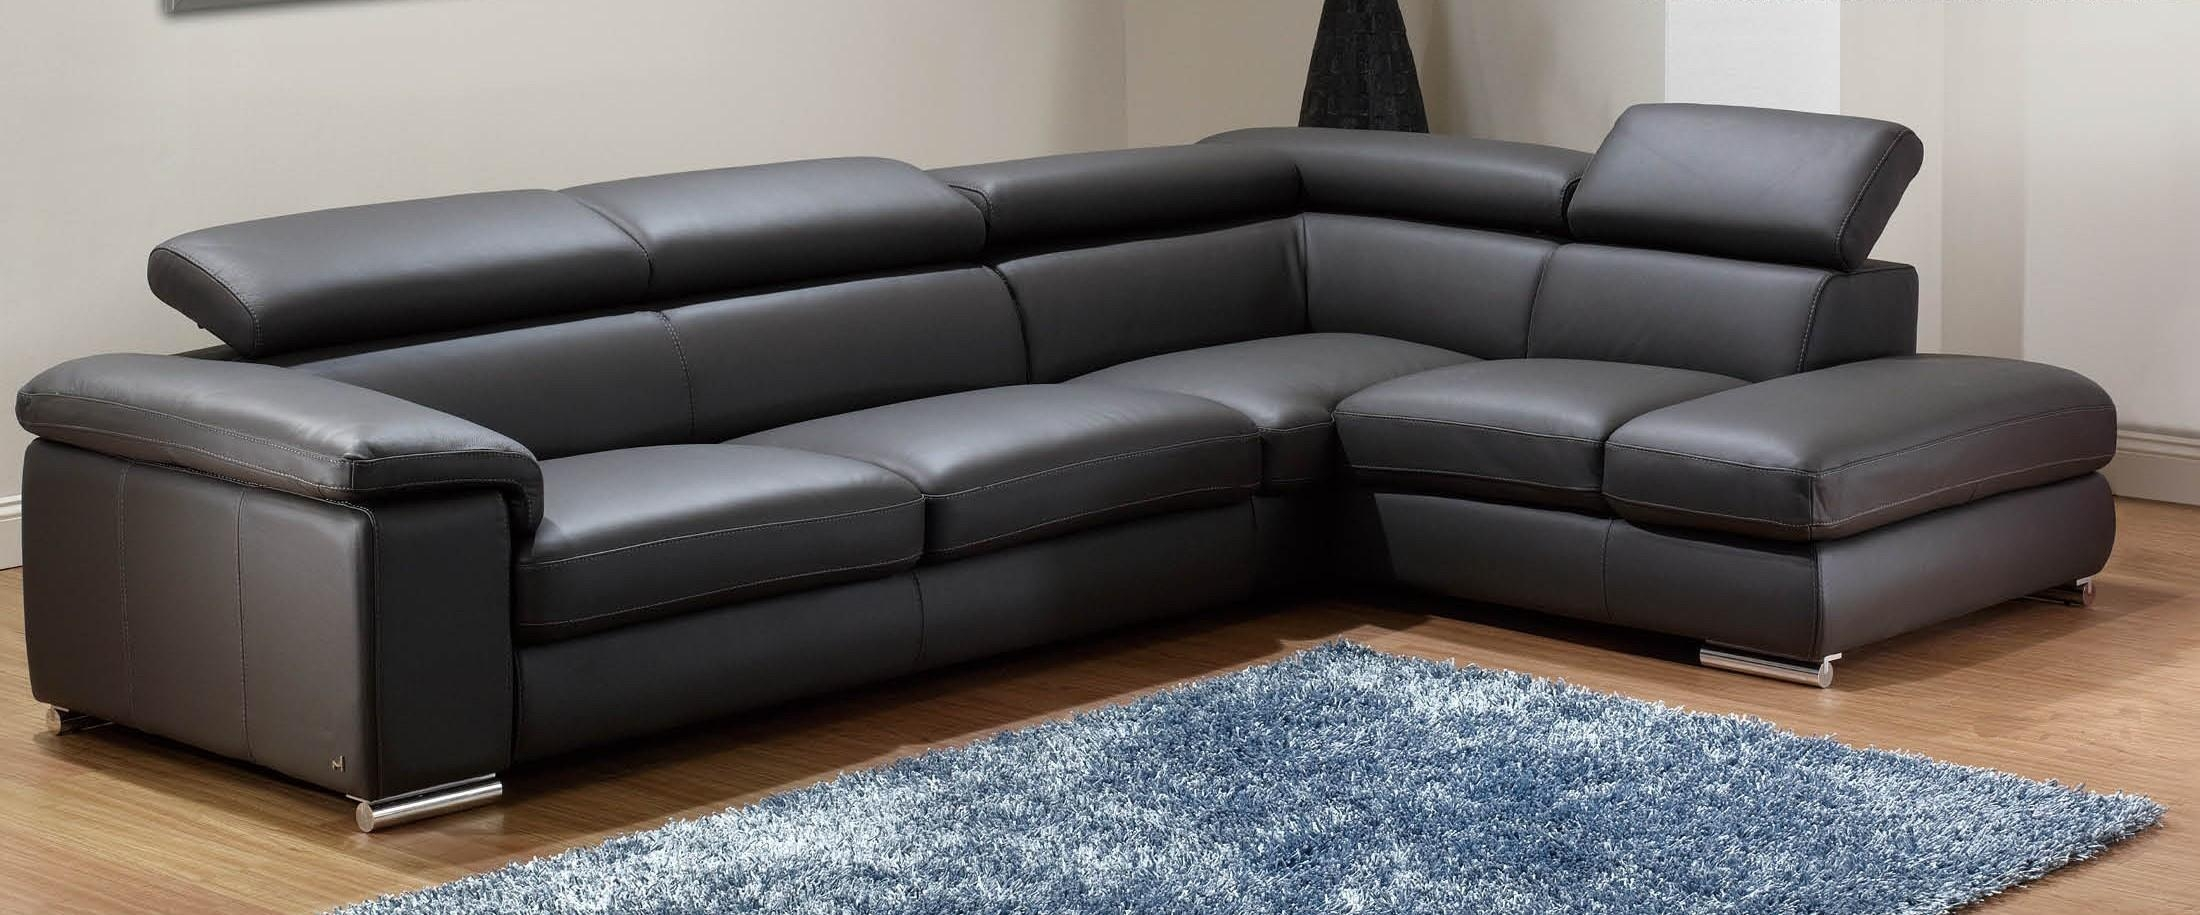 Sofas Center : Sofas Sectionals Comfortable Sleeper Sofa Big Lots Pertaining To Big Sofas Sectionals (View 7 of 15)